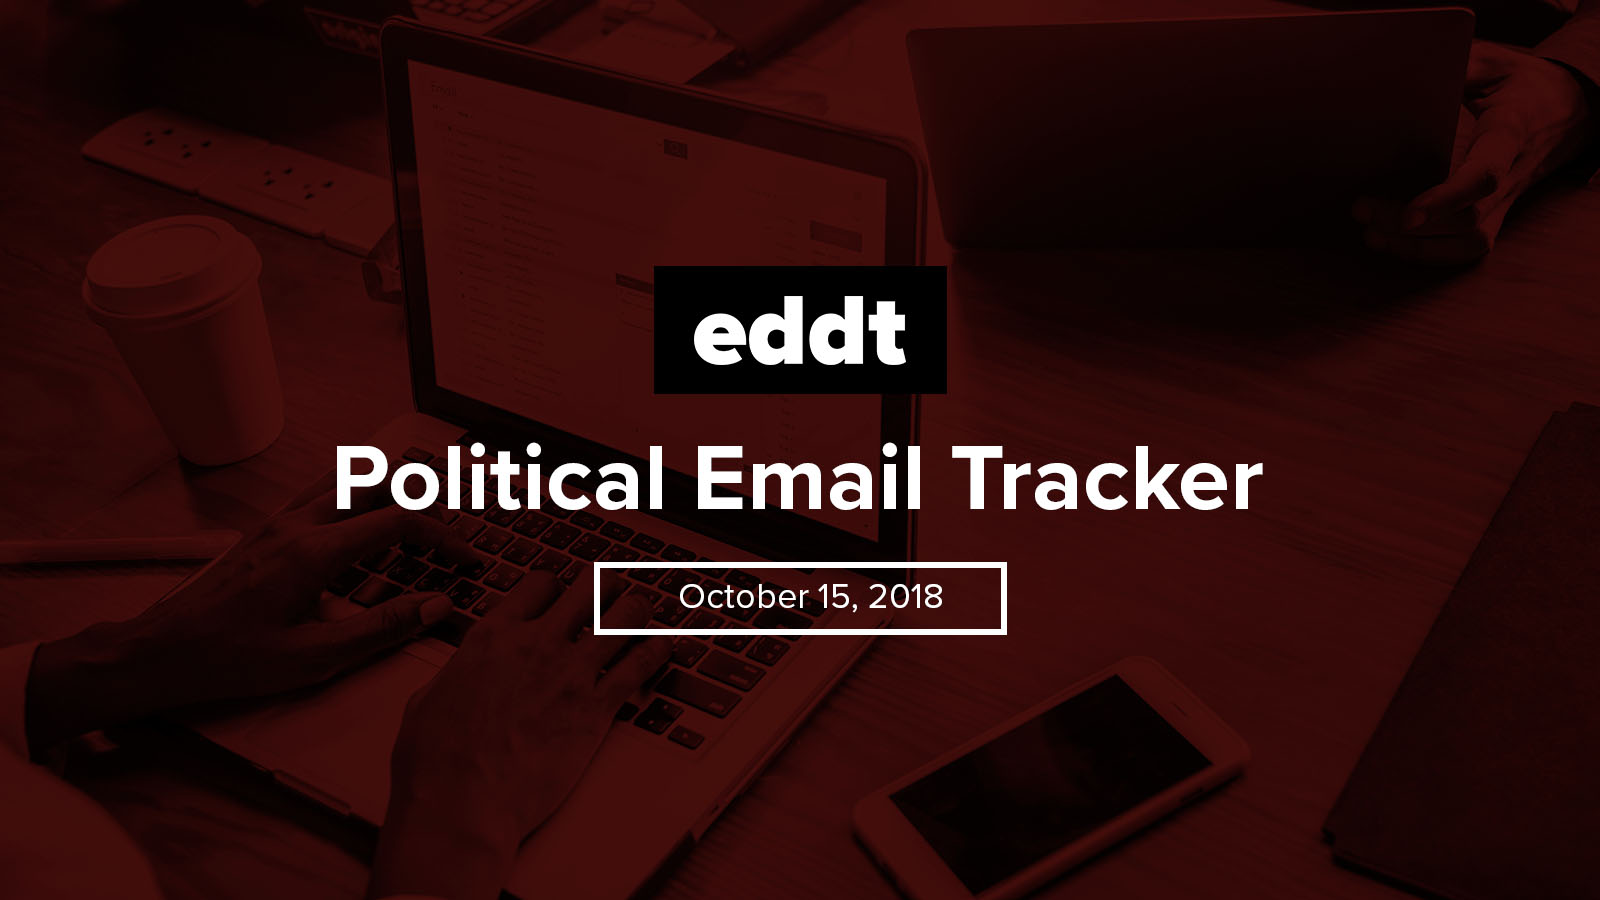 Political Email Tracker - October 15, 2018